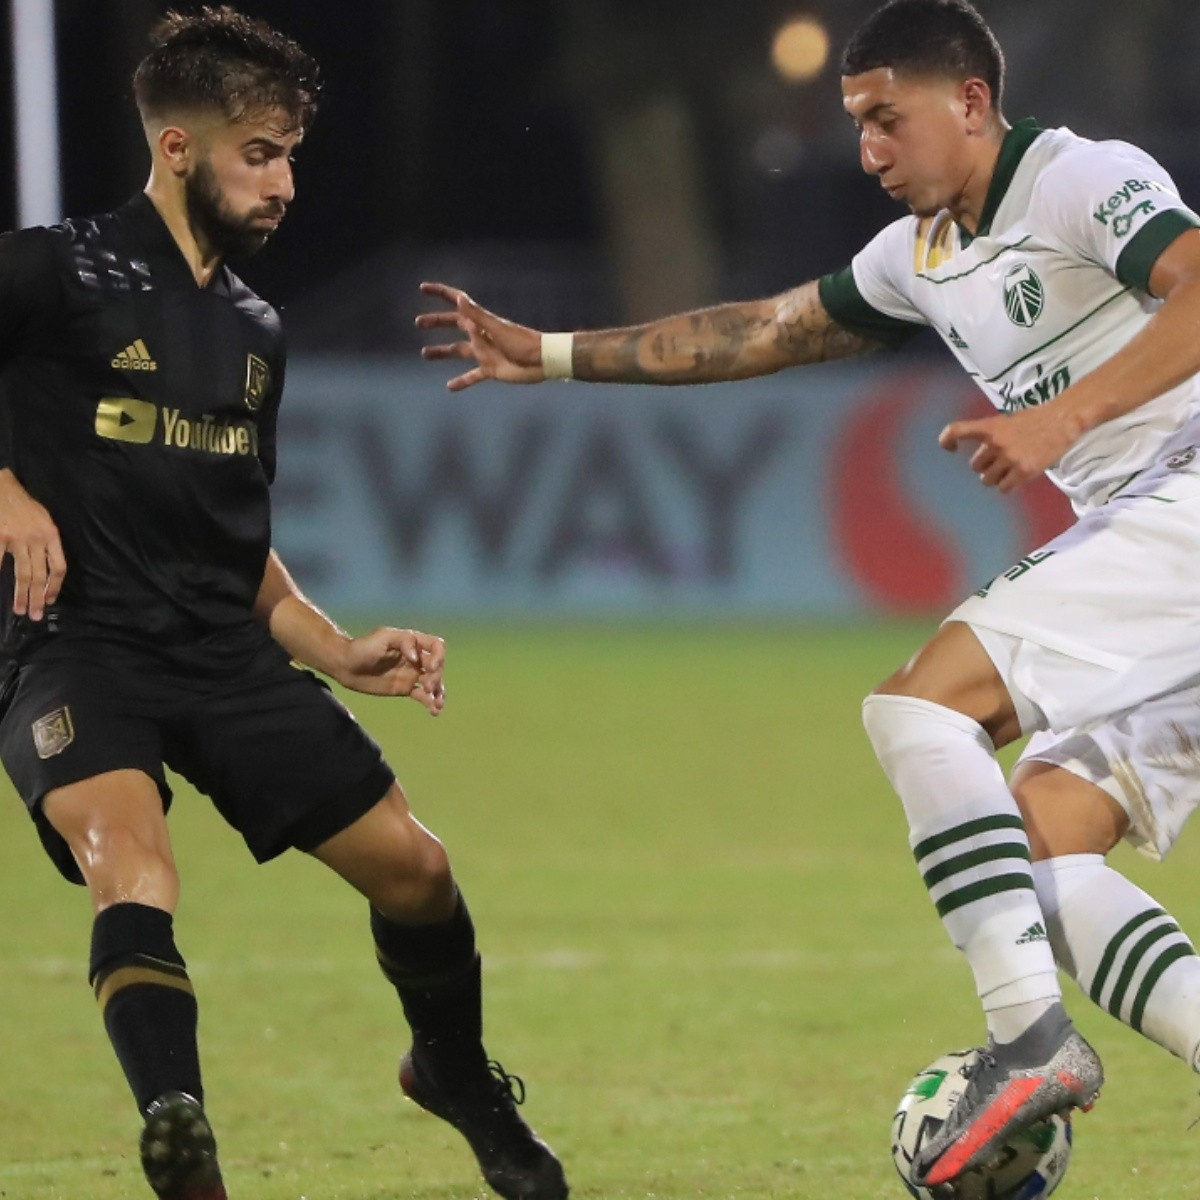 Lafc Vs Portland Timbers How To Watch Or Live Stream Online 2020 Mls Season Free Predictions And Odds Bolavip Us